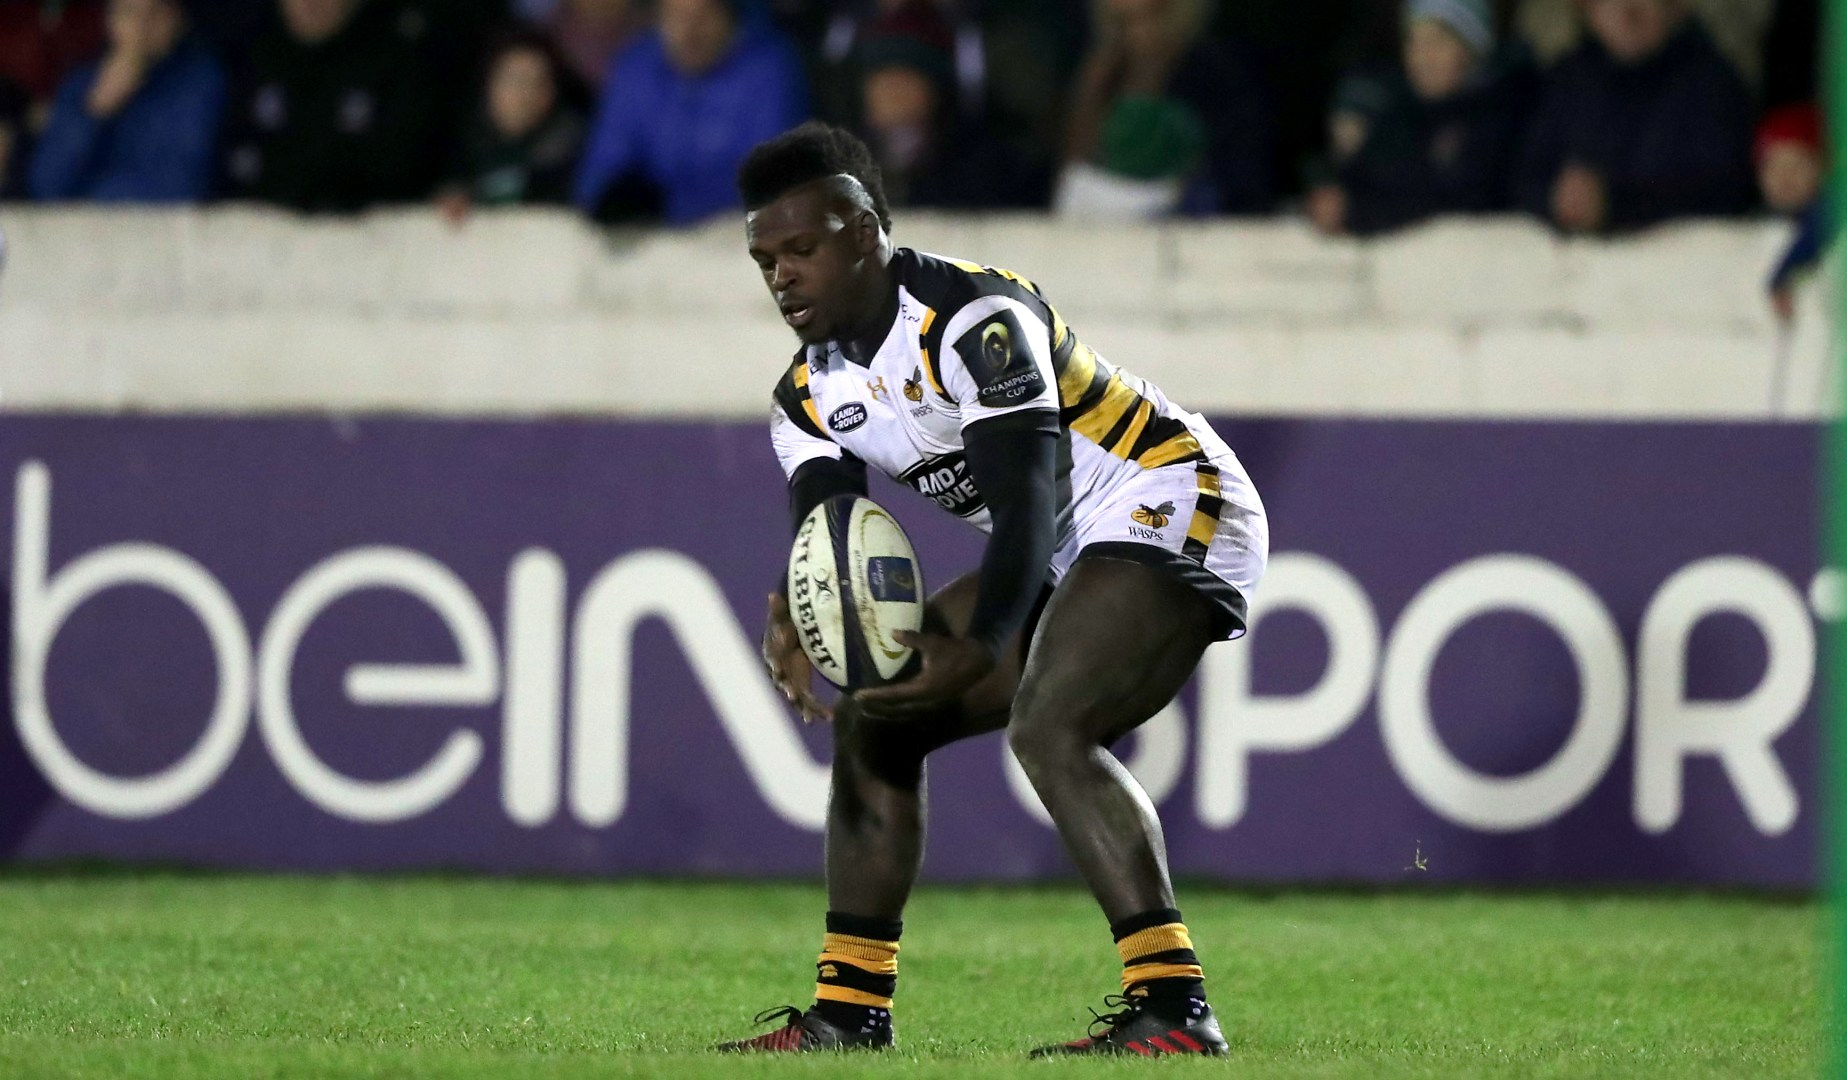 LionsWatch: Wasps forced to dig deep against resilient Zebre